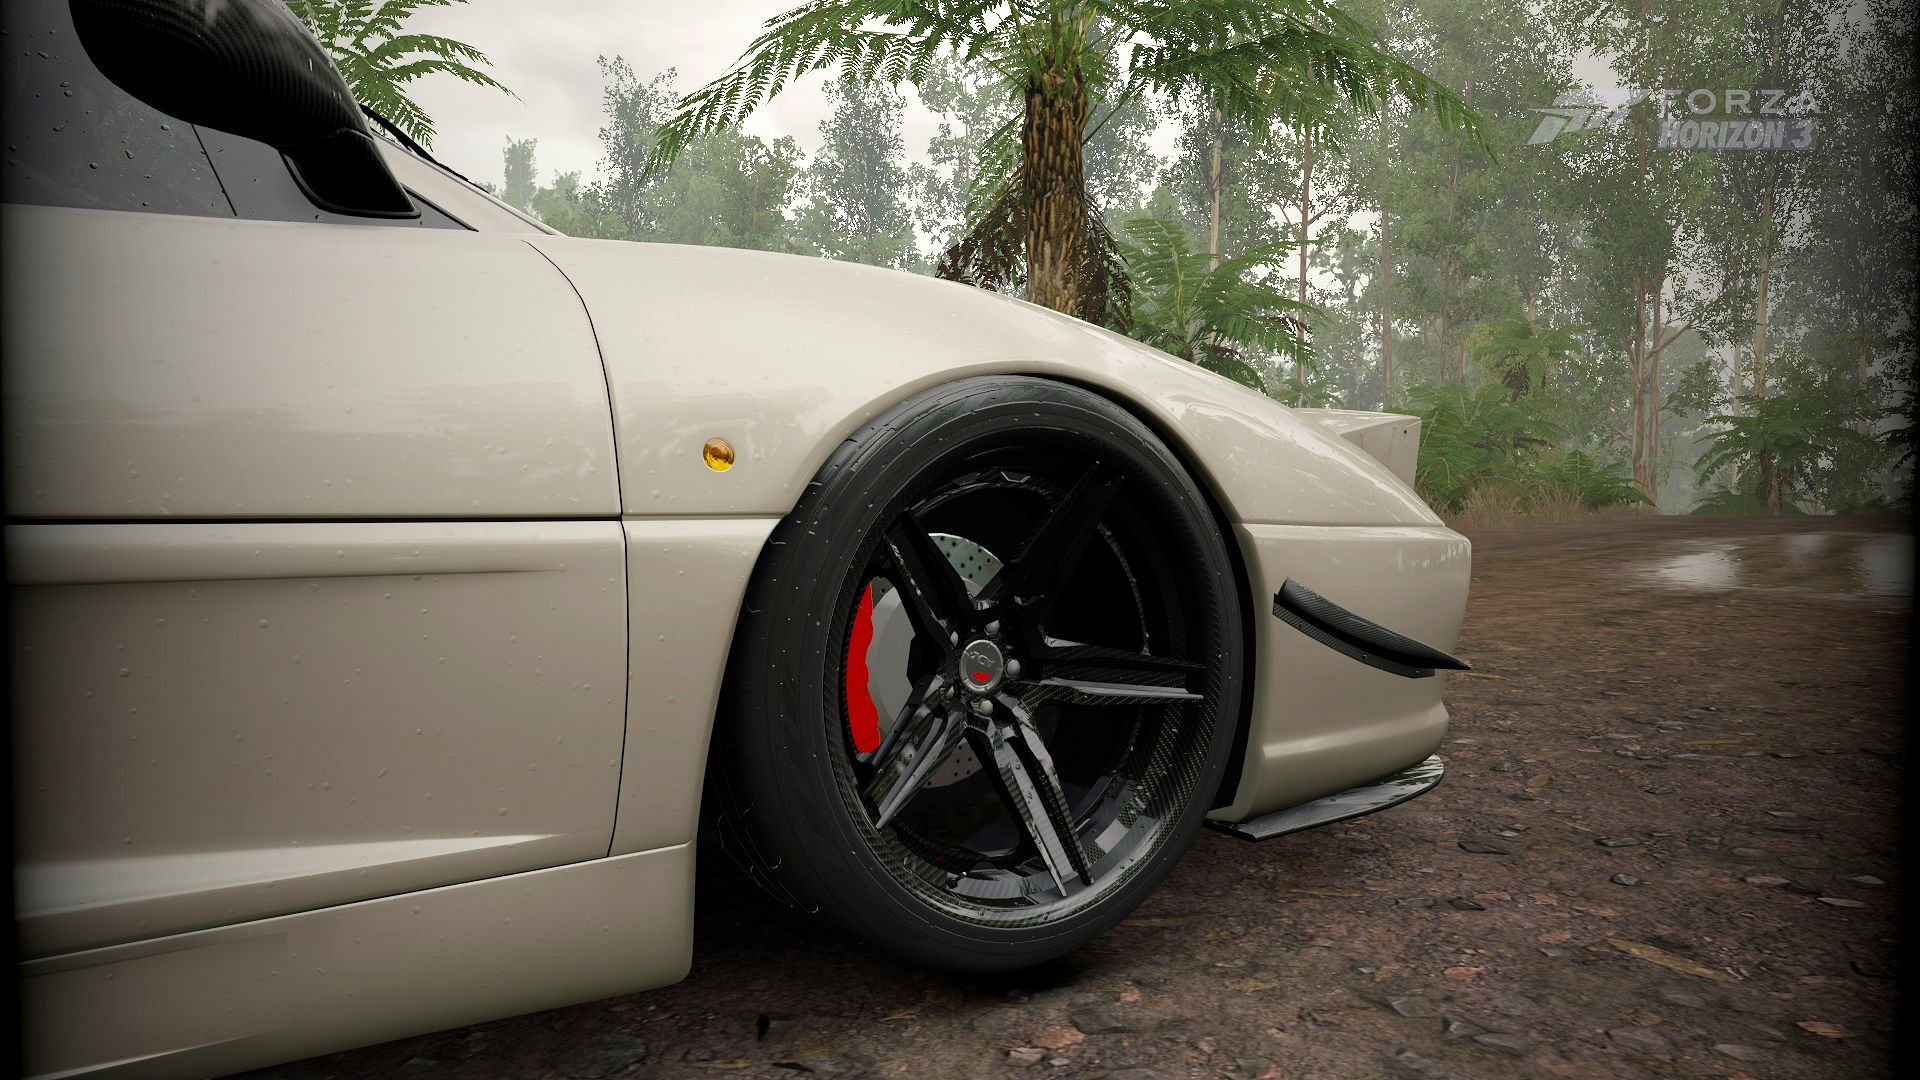 Show Your MnM Cars (All Forzas) - Page 35 35665565081_37beb086b8_o